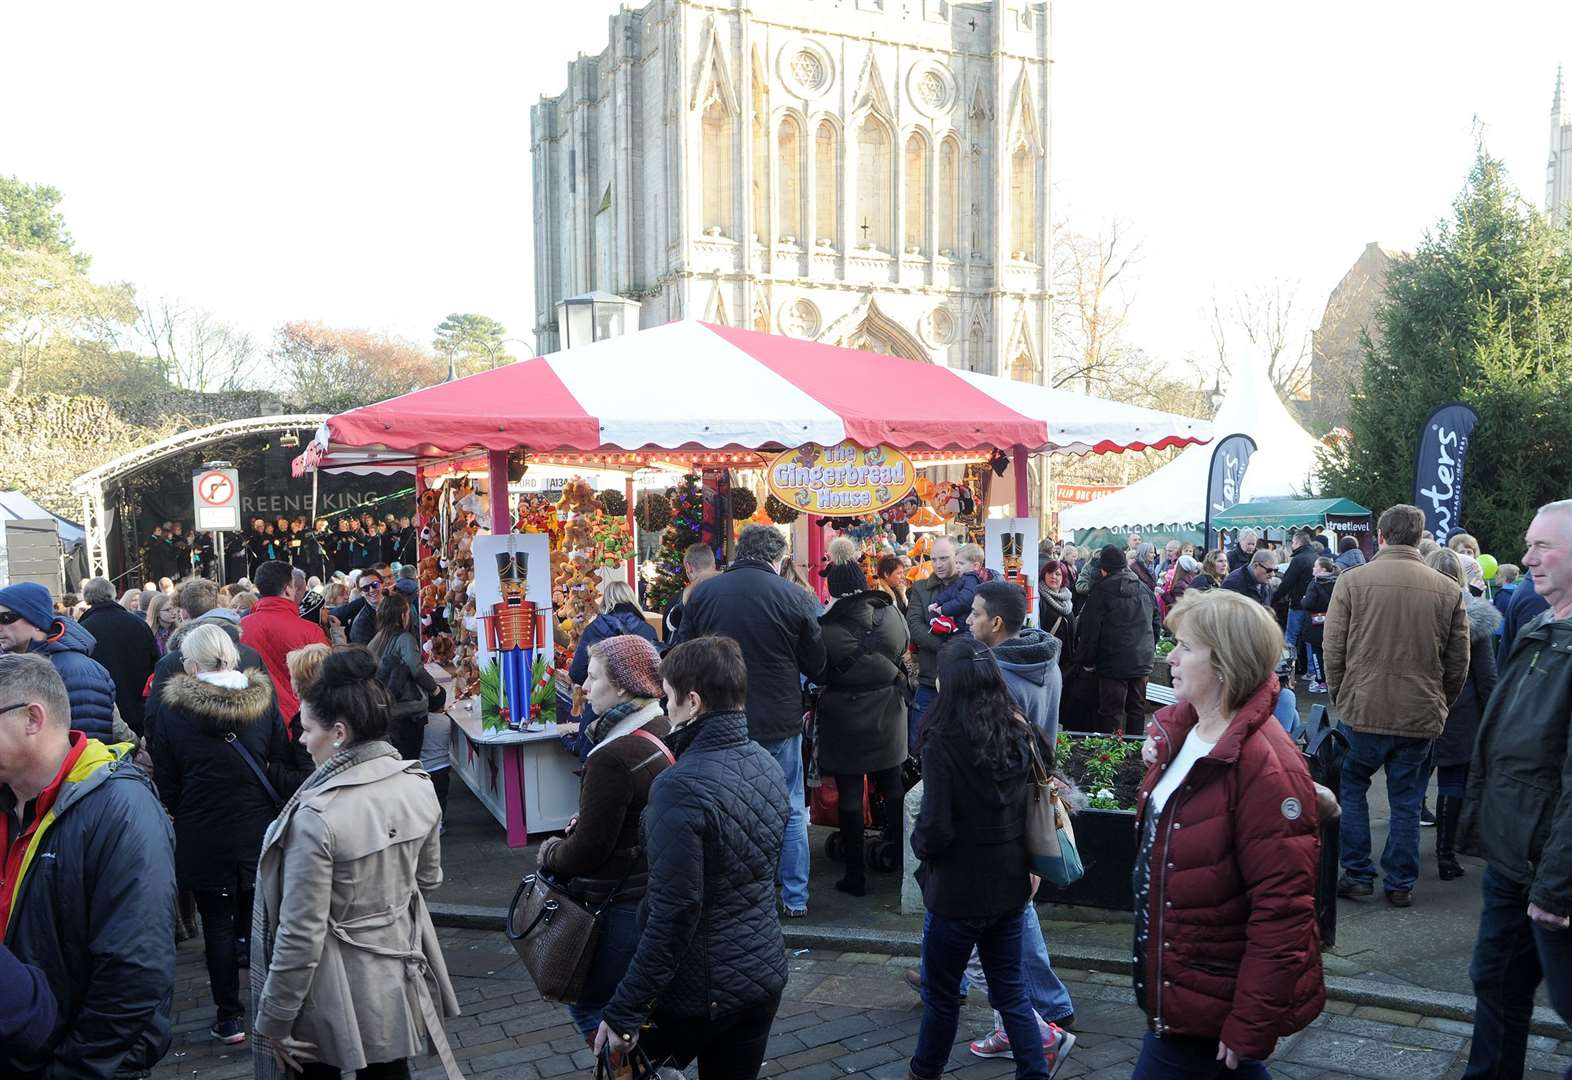 Jingle all the way to this year's Bury St Edmunds Christmas Fayre